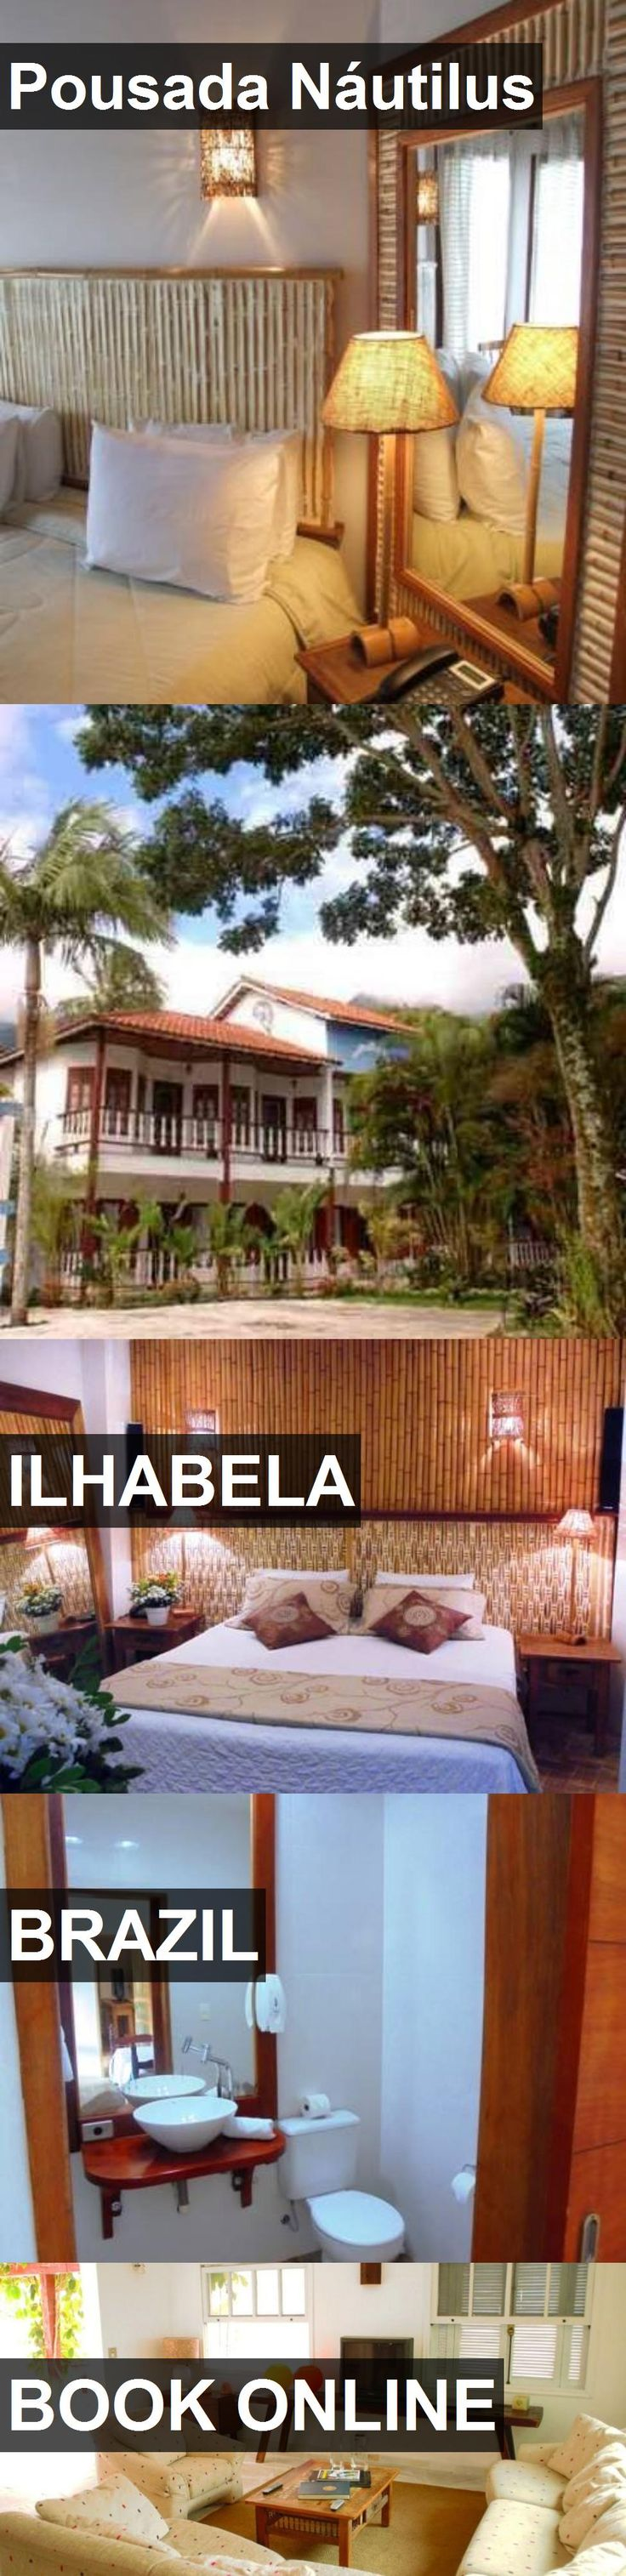 Hotel Pousada Náutilus in Ilhabela, Brazil. For more information, photos, reviews and best prices please follow the link. #Brazil #Ilhabela #PousadaNáutilus #hotel #travel #vacation